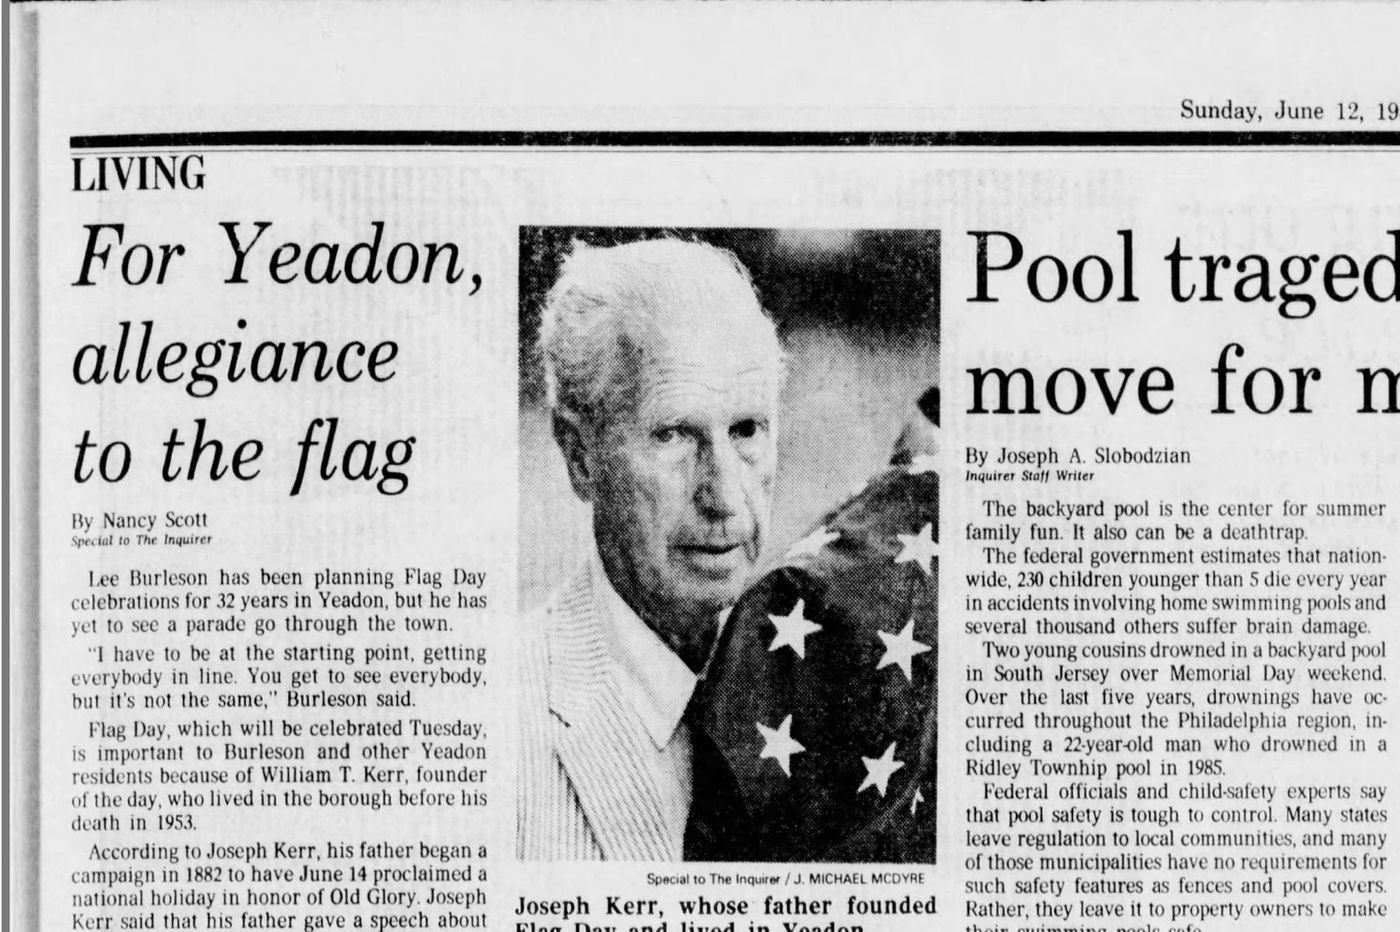 From The Inquirer archives: Yeadon Borough resident was the founder of Flag Day